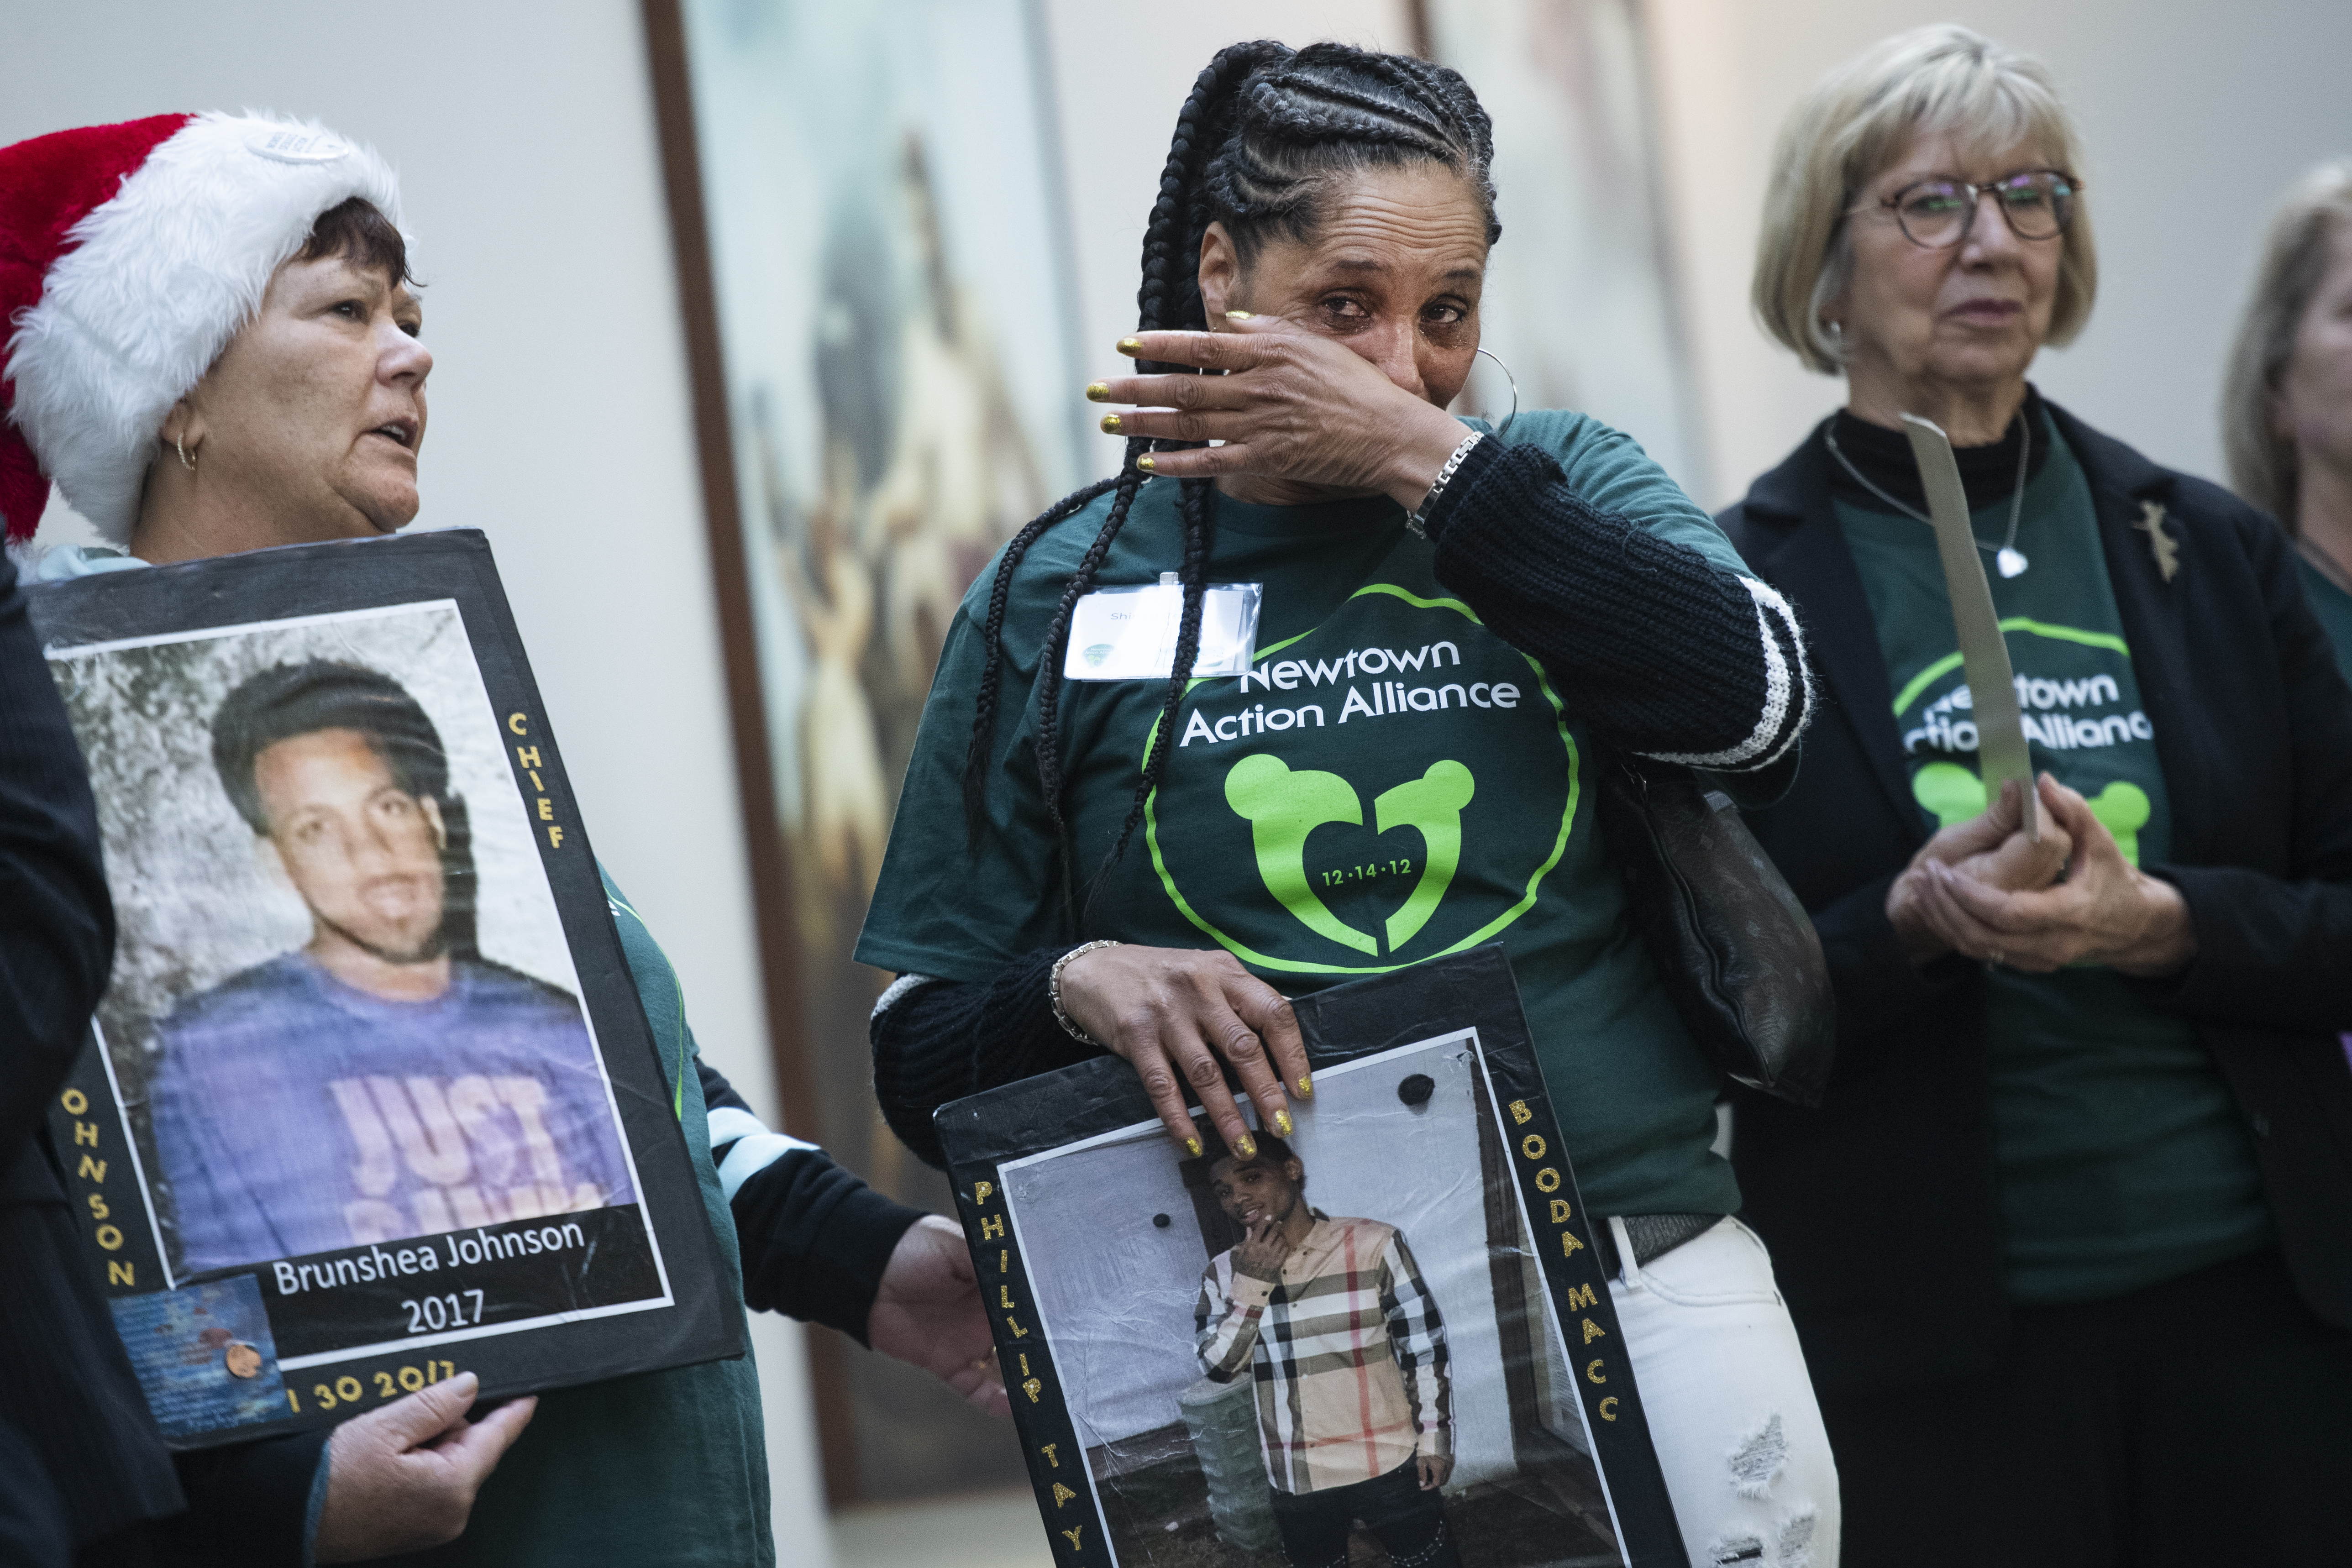 """UNITED STATES - DECEMBER 5: Shirley Carter holds a pictures of her son, Phillip Taylor, who was killed in Dallas in 2017, during a rally in Hart Building to call for """"action on gun violence prevention,"""" on Thursday, December 5, 2019. (Photo By Tom Williams/CQ Roll Call)"""